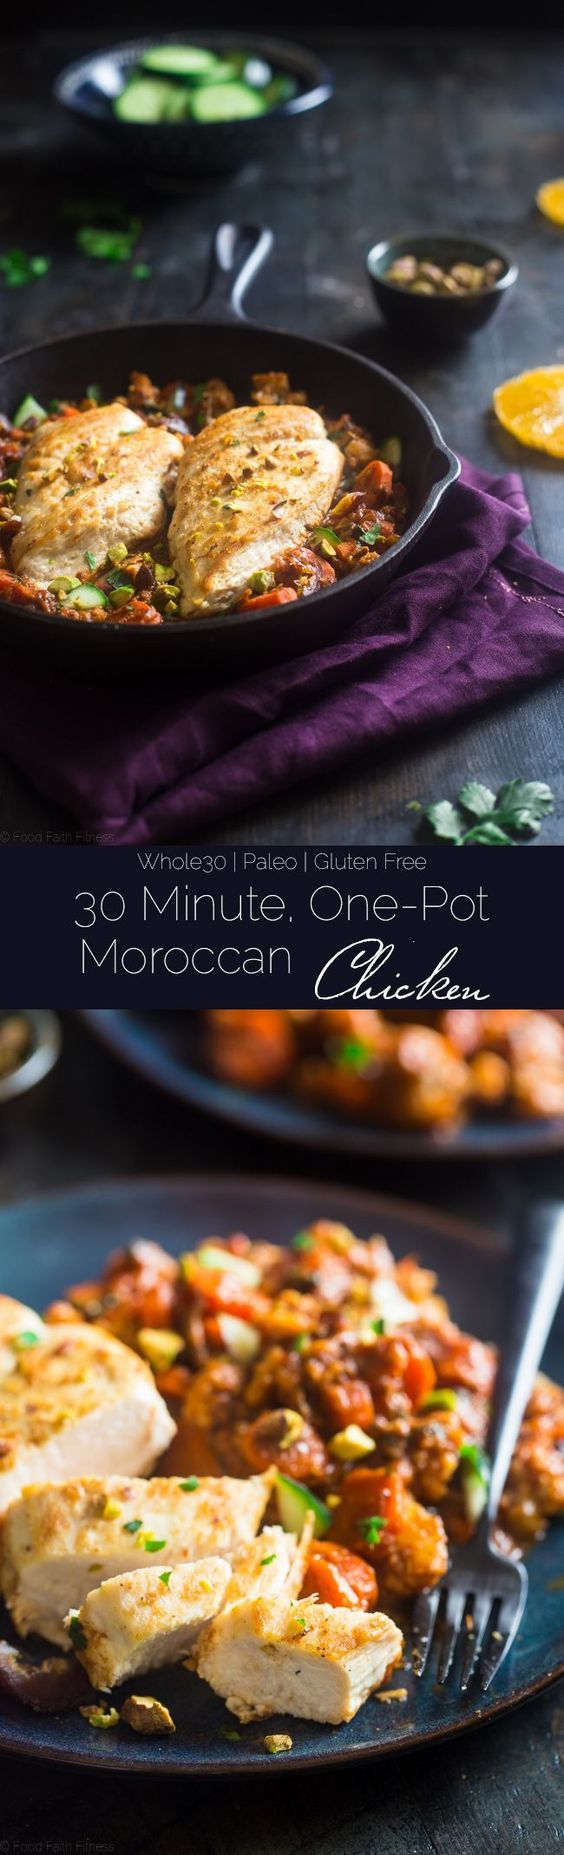 Whole30 Moroccan Chicken Skillet   a How-To Video - This quick and easy one-pan 30 minute Moroccan chicken skillet is LOADED with spicy-sweet flavor. It's a gluten free paleo and whole30 friendly weeknight dinner! |  |